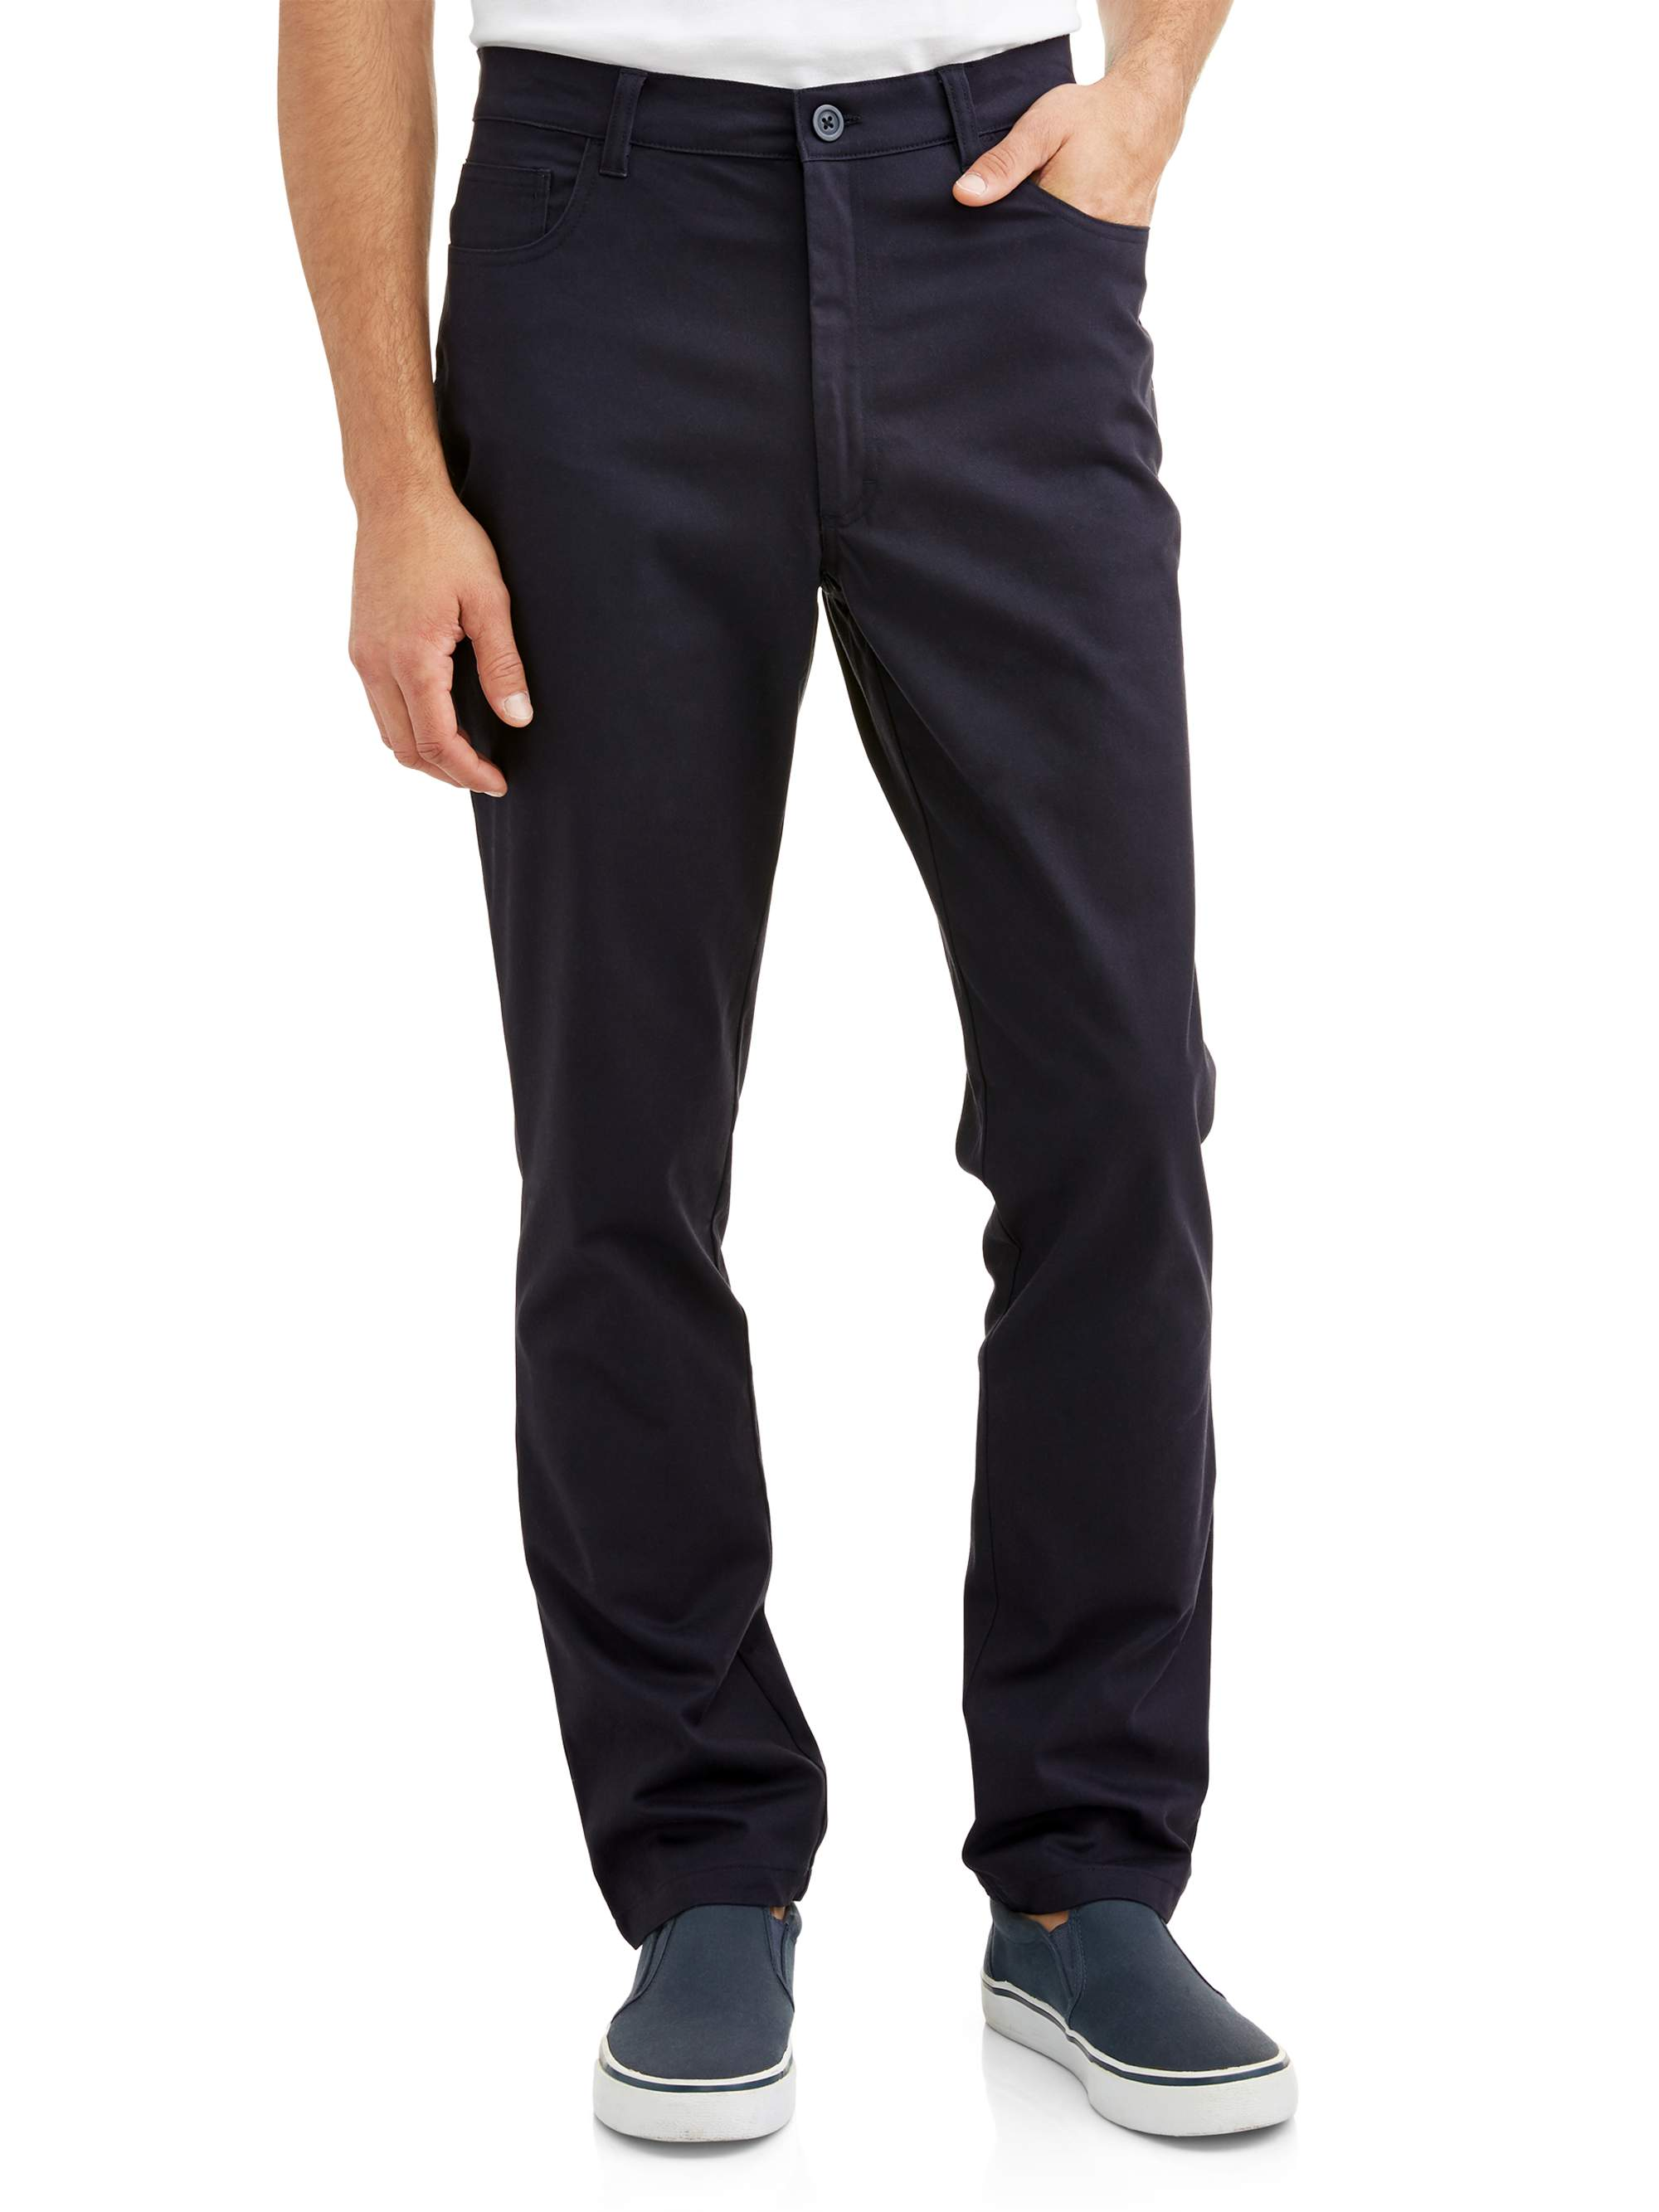 Young Men's 5-Pocket Stretch Skinny Pant